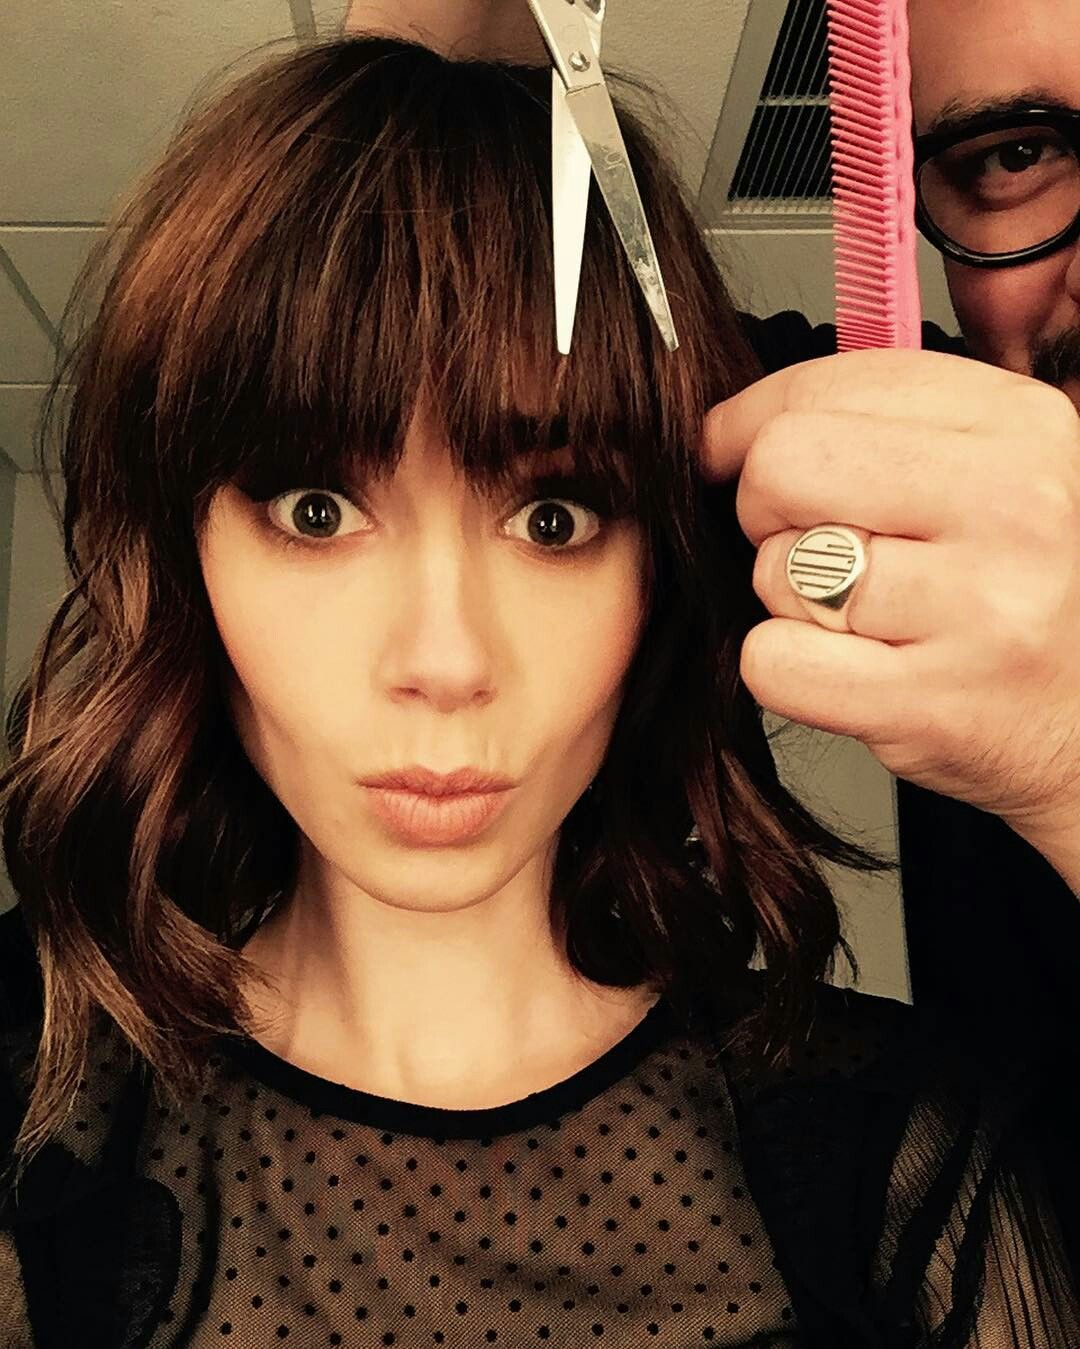 Chinese style haircut men lily collins  lily collins   pinterest  lily collins